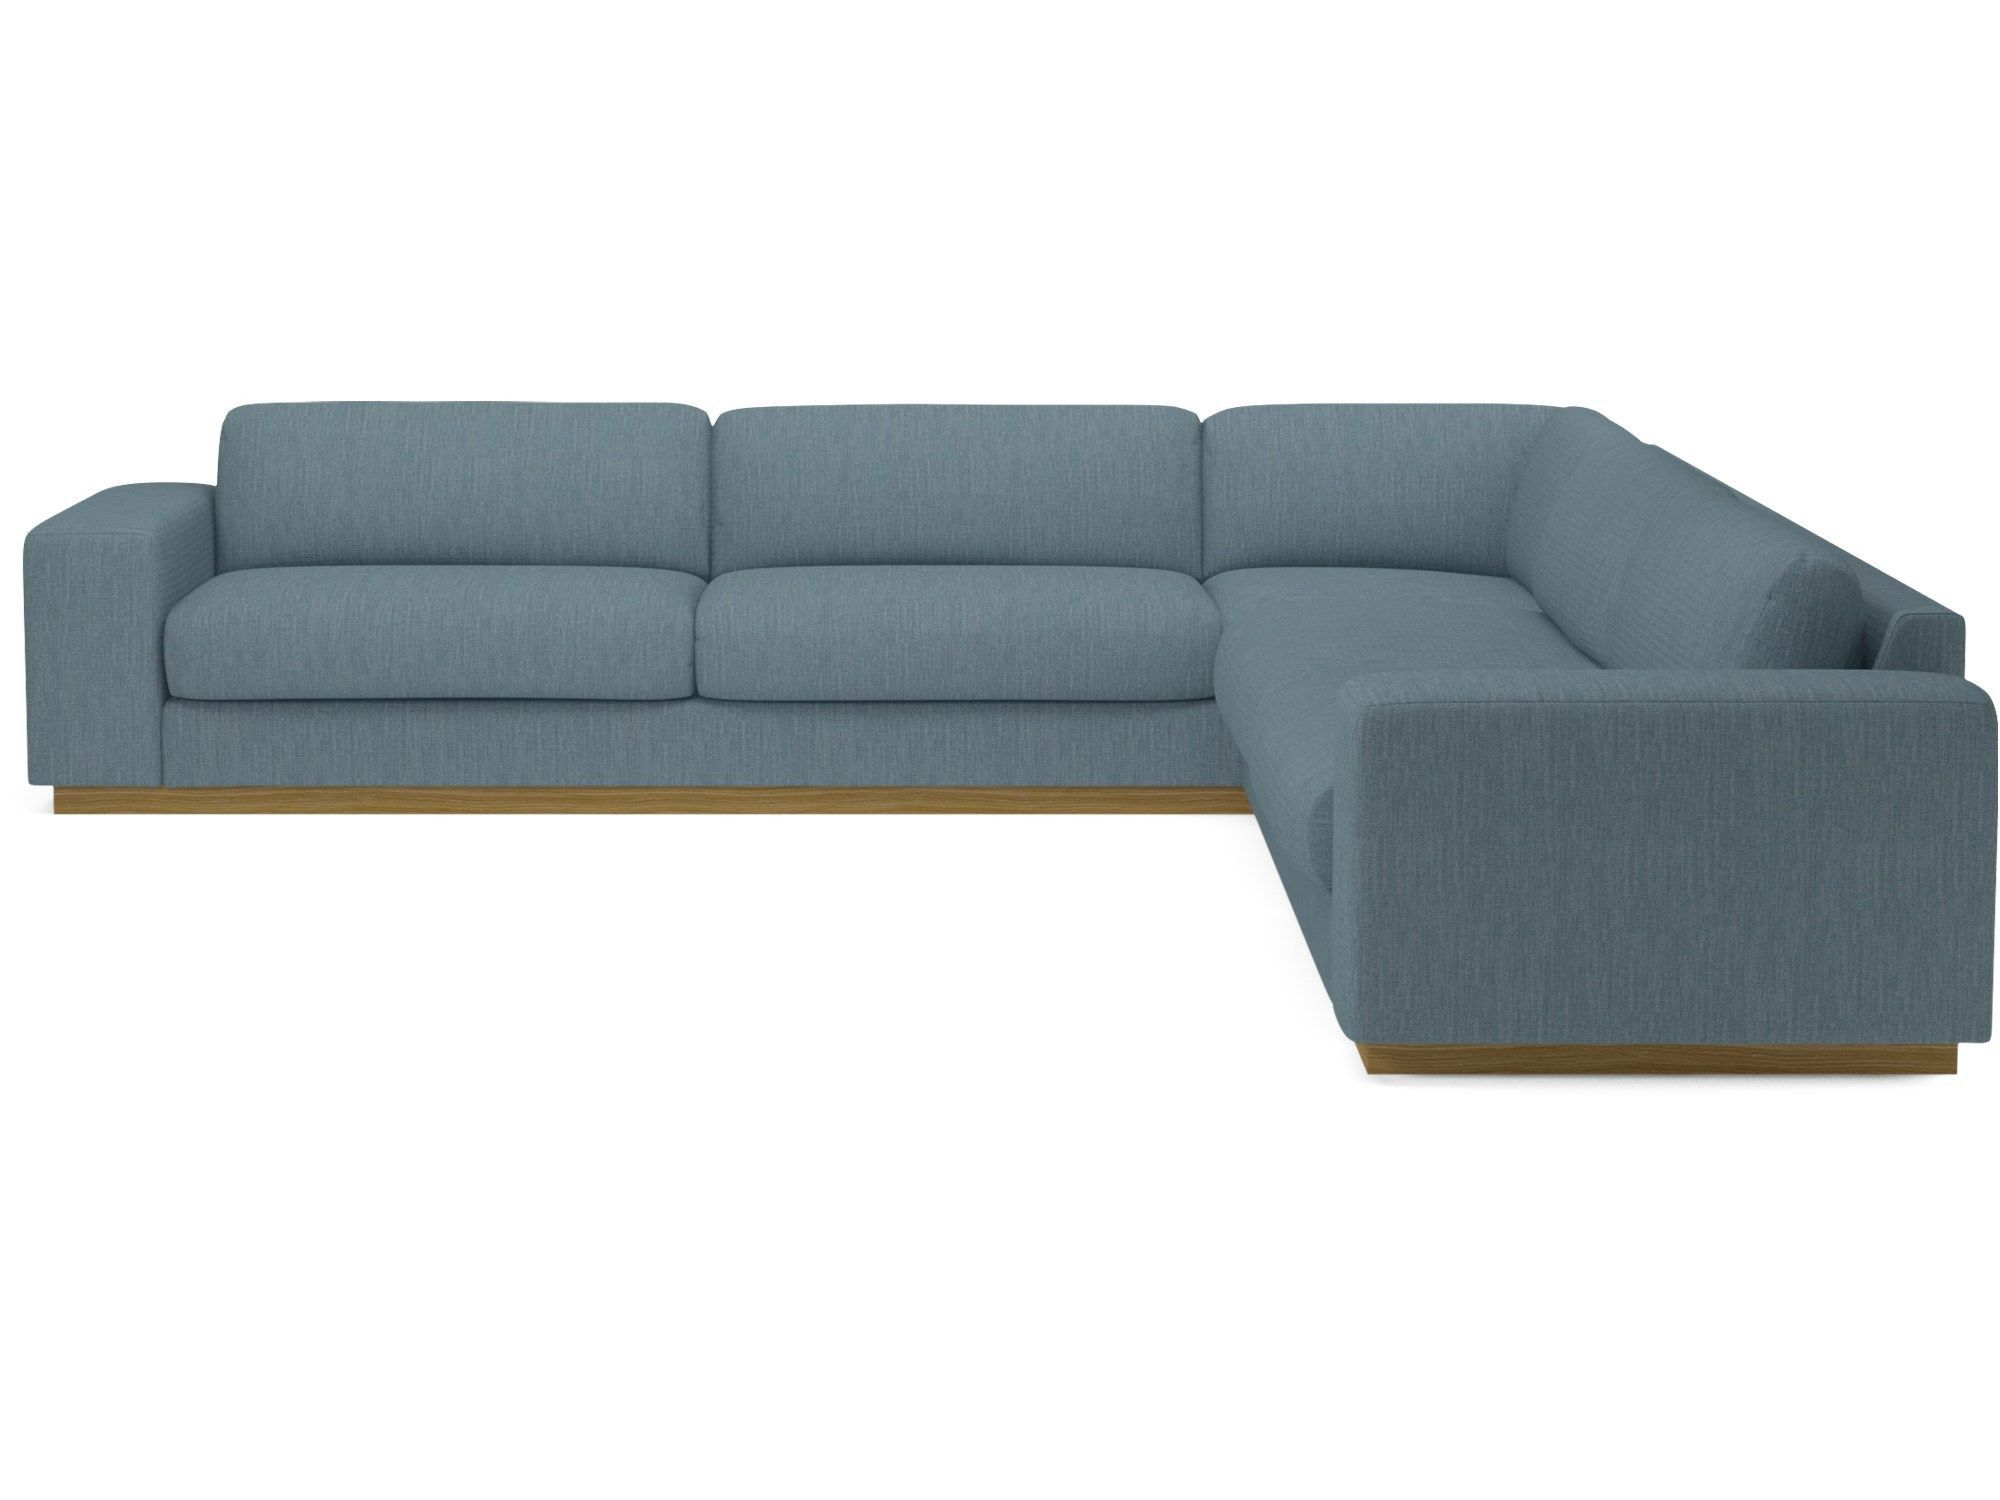 Lieblingsstuck Sofa Dreisitzer Scandinavian Design Decor Home